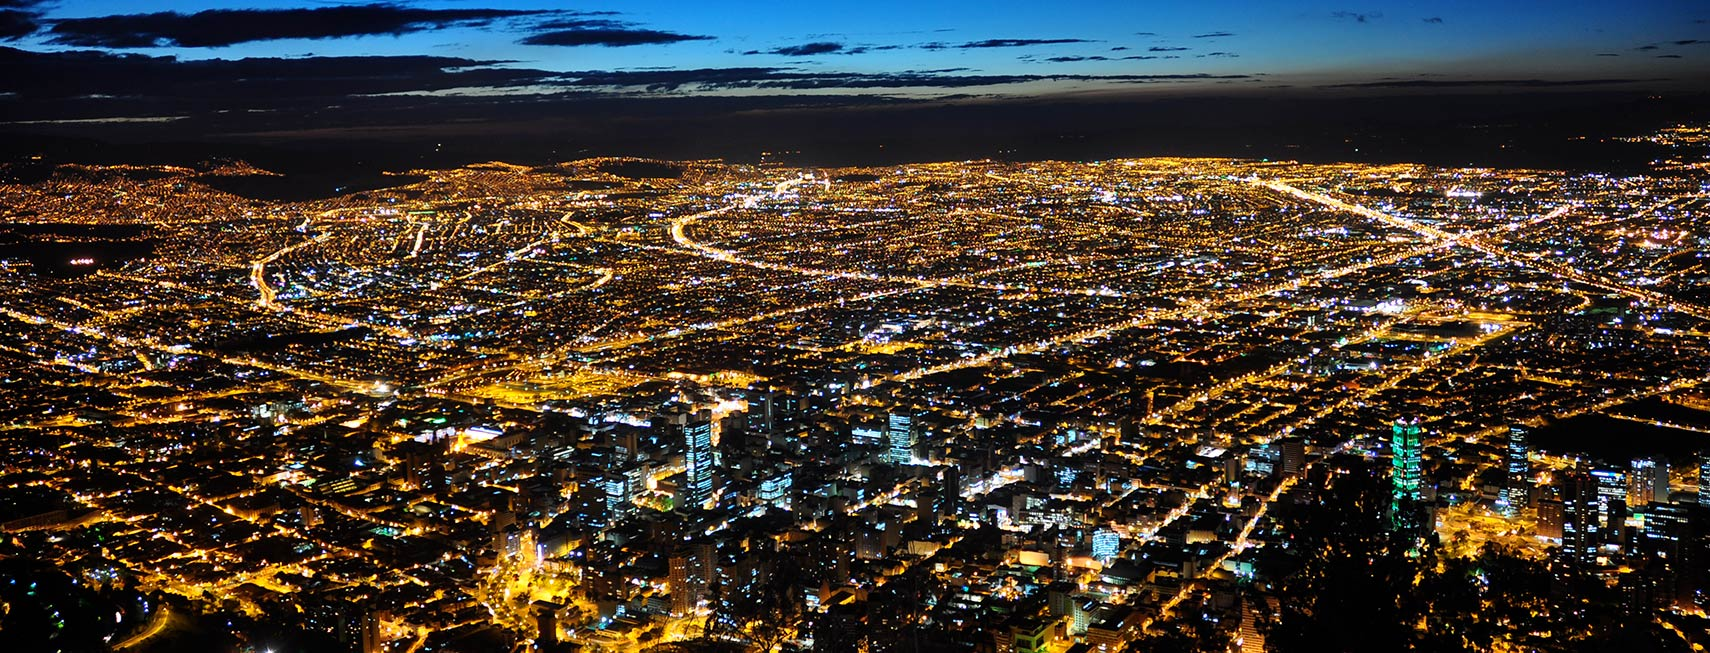 Google Map of the City of Bogotá, Bogota, Colombia - Nations Online ...